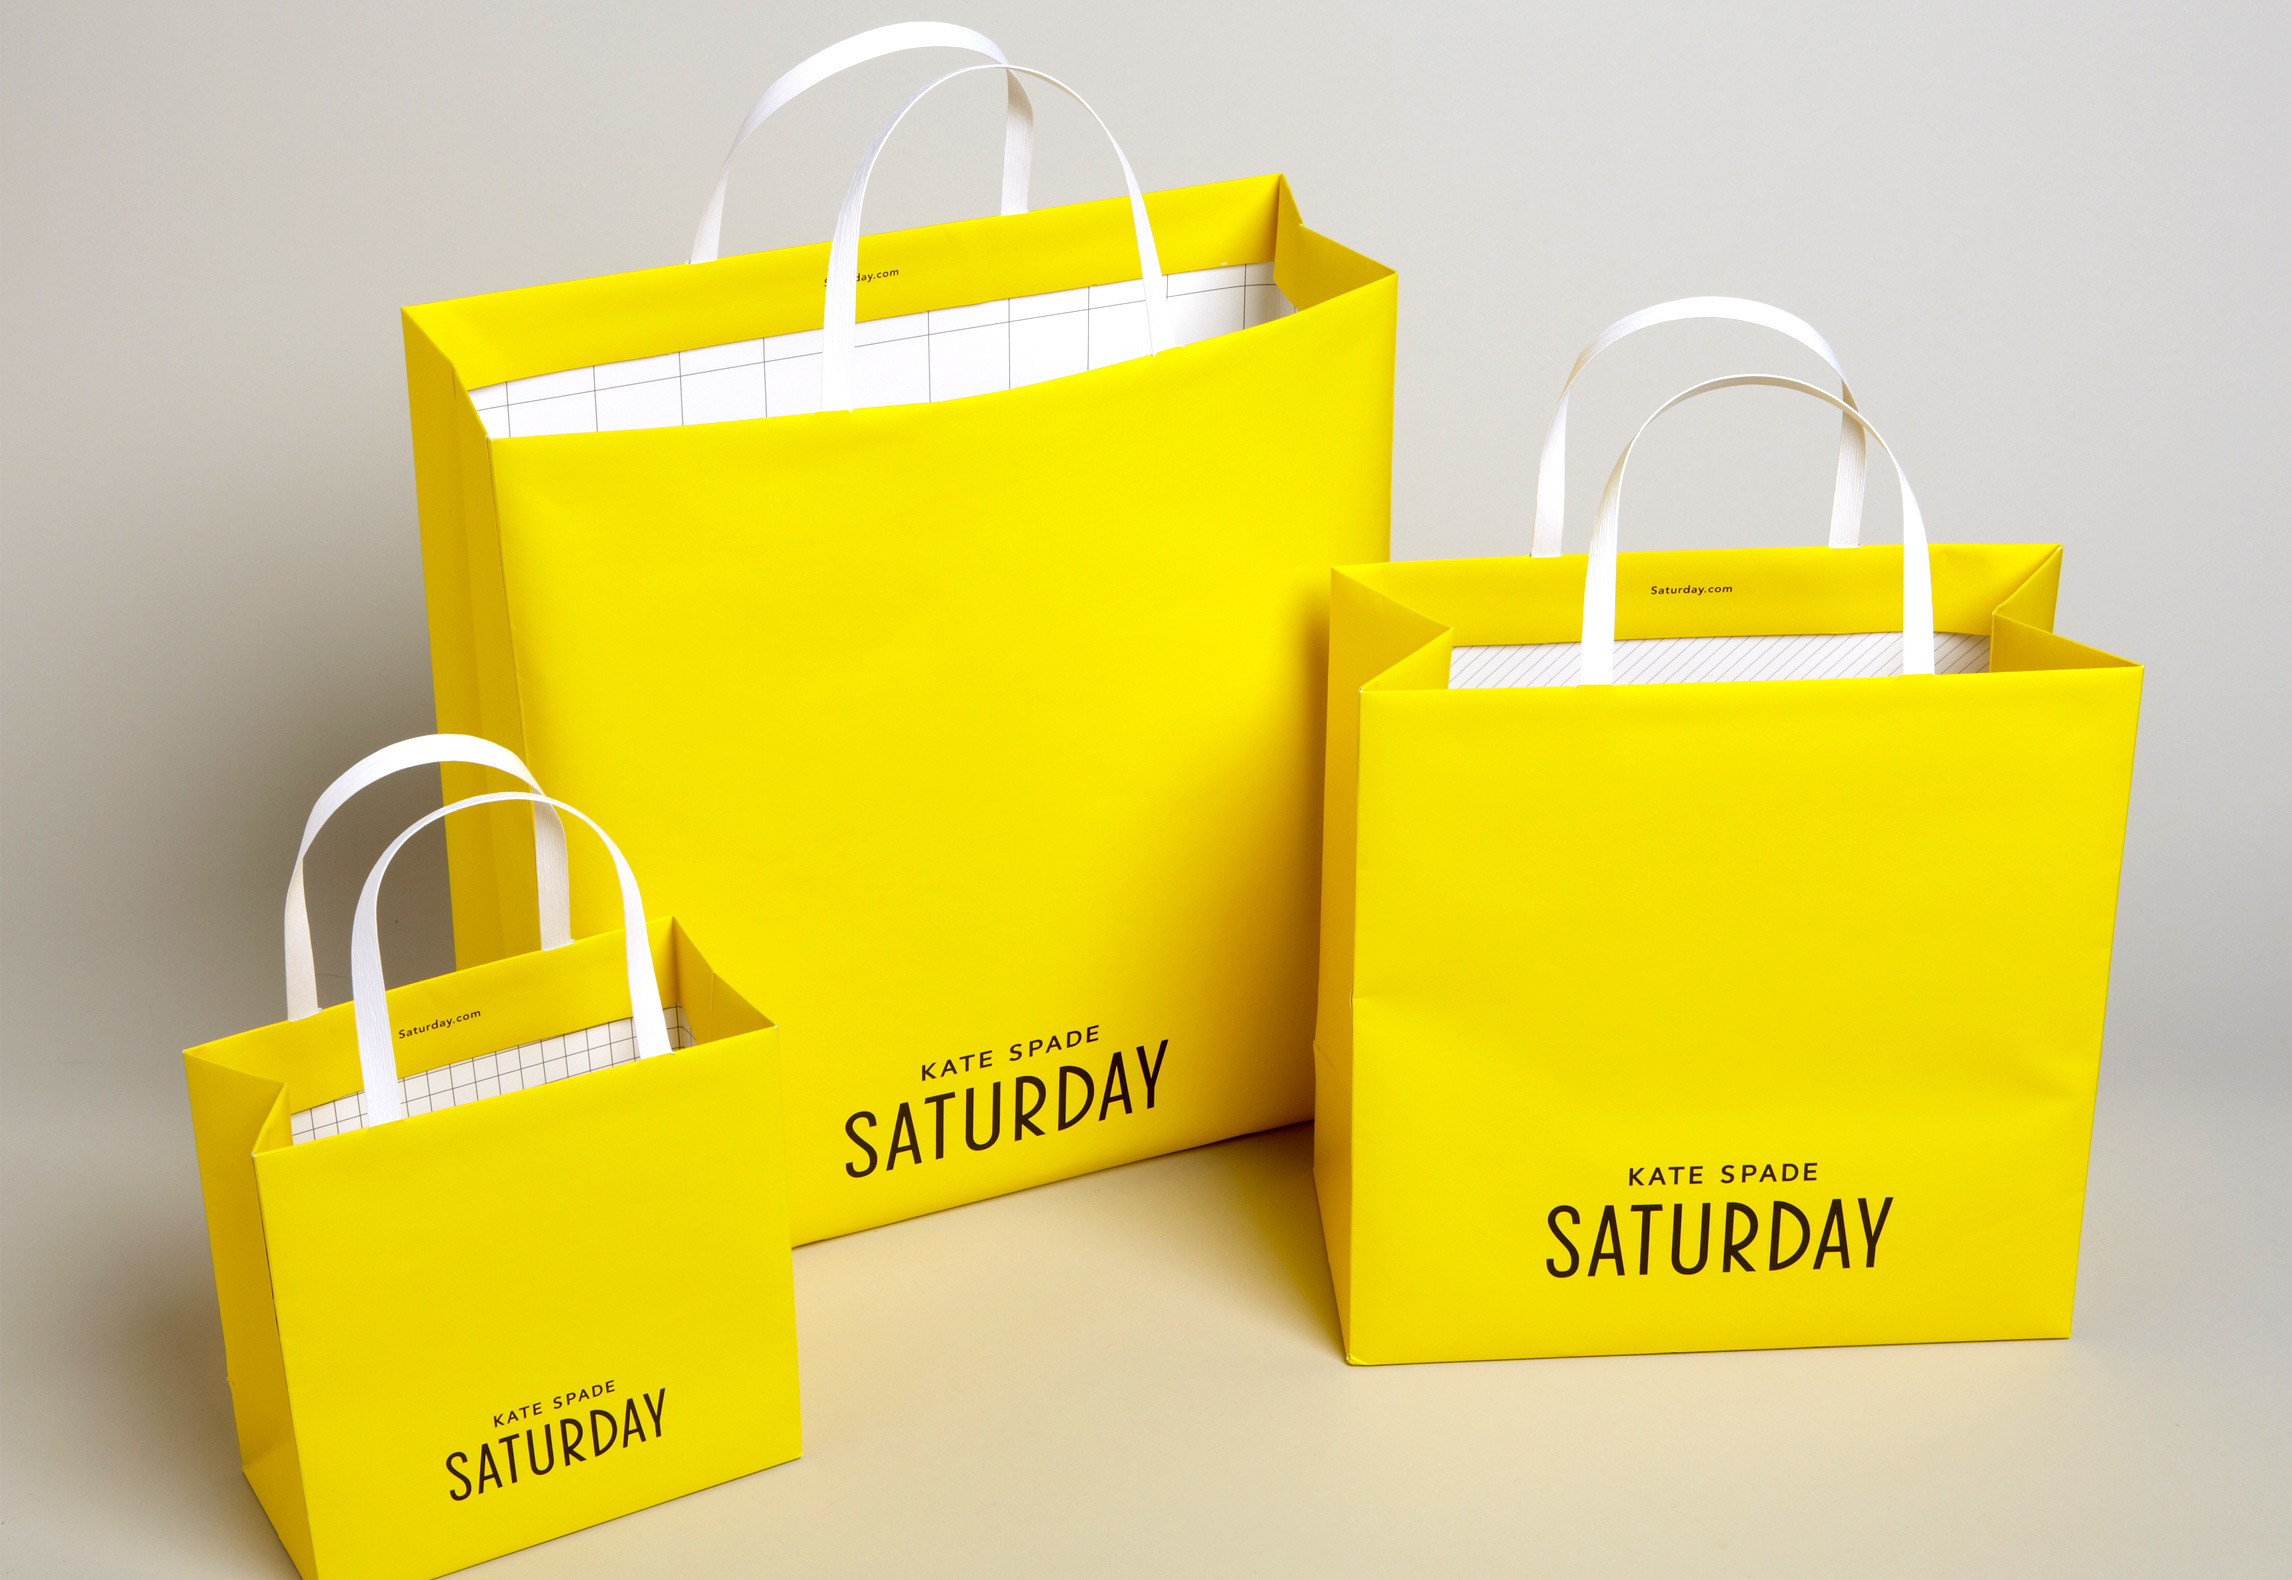 Kate Spade Saturday Packaging